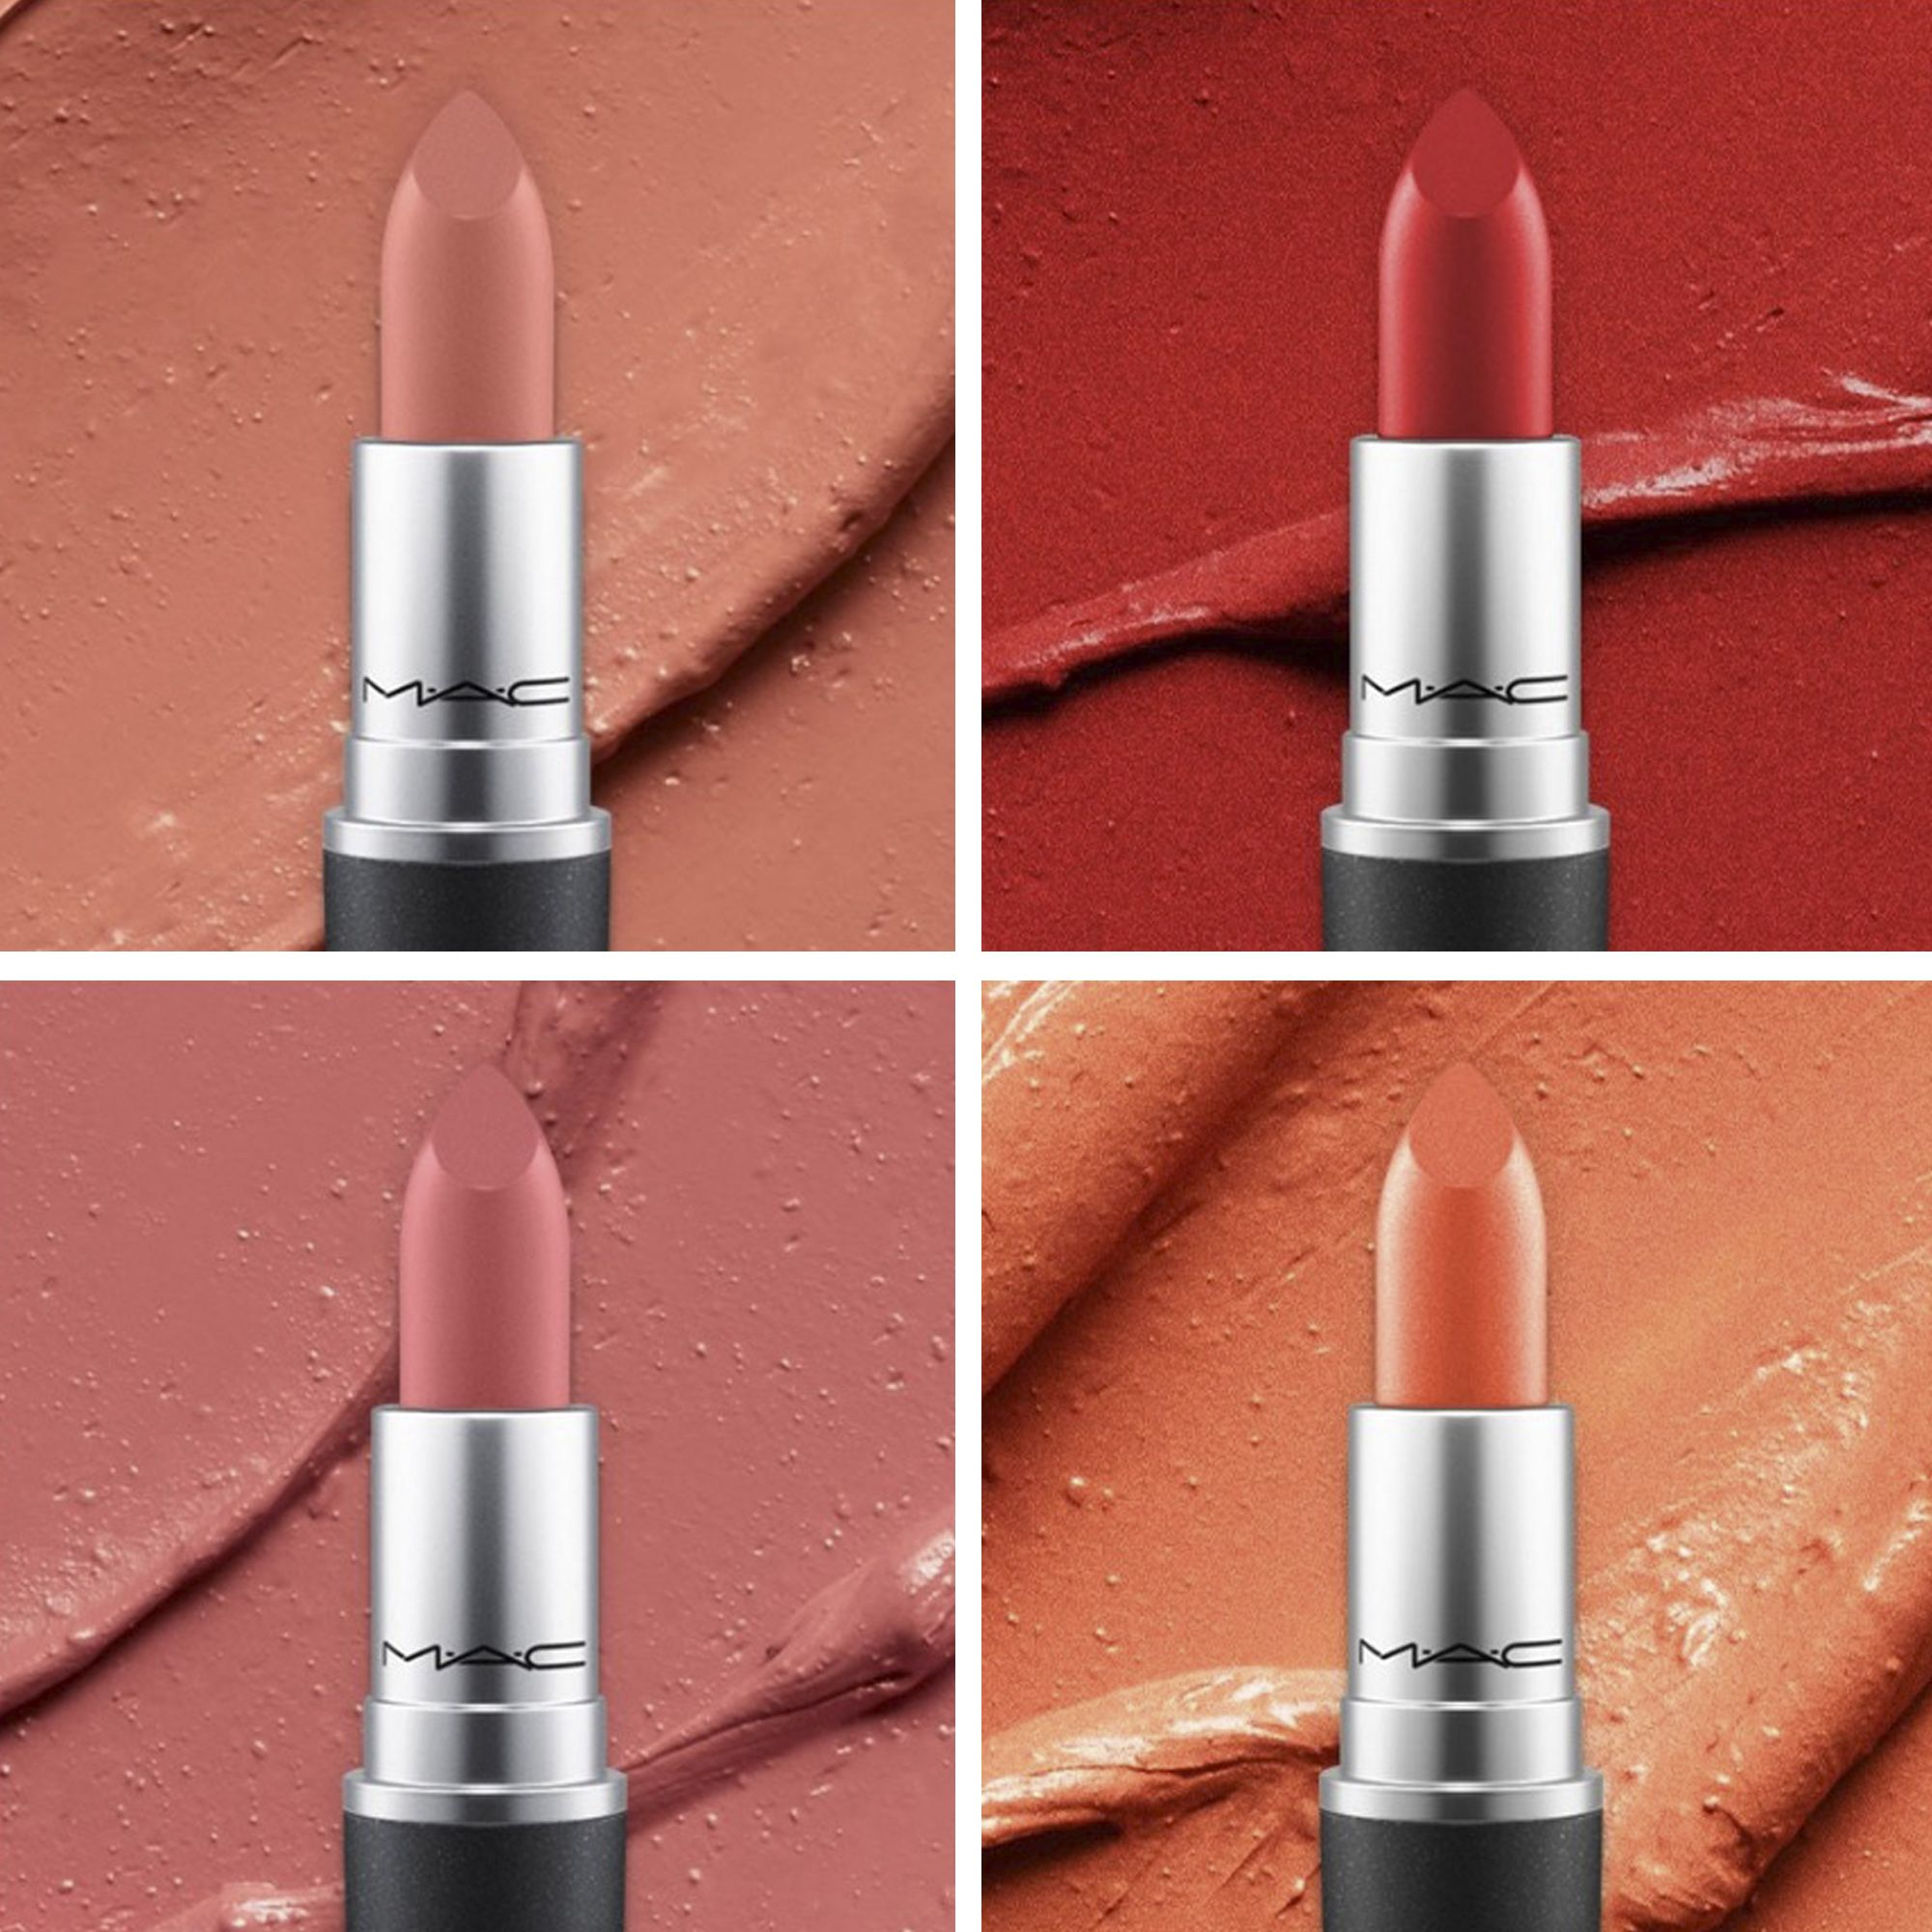 MAC is giving away FREE lippies on